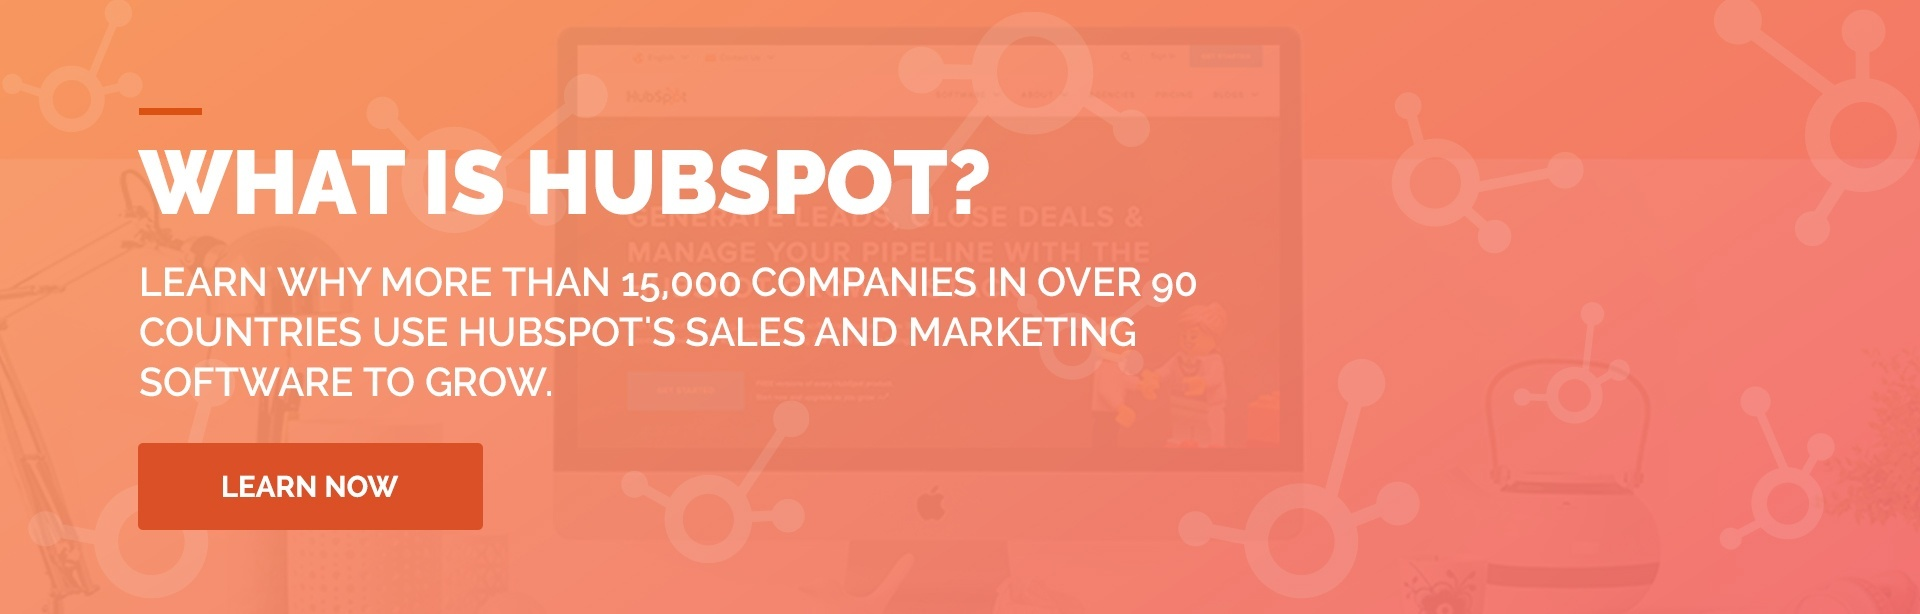 What is HubSpot Software?